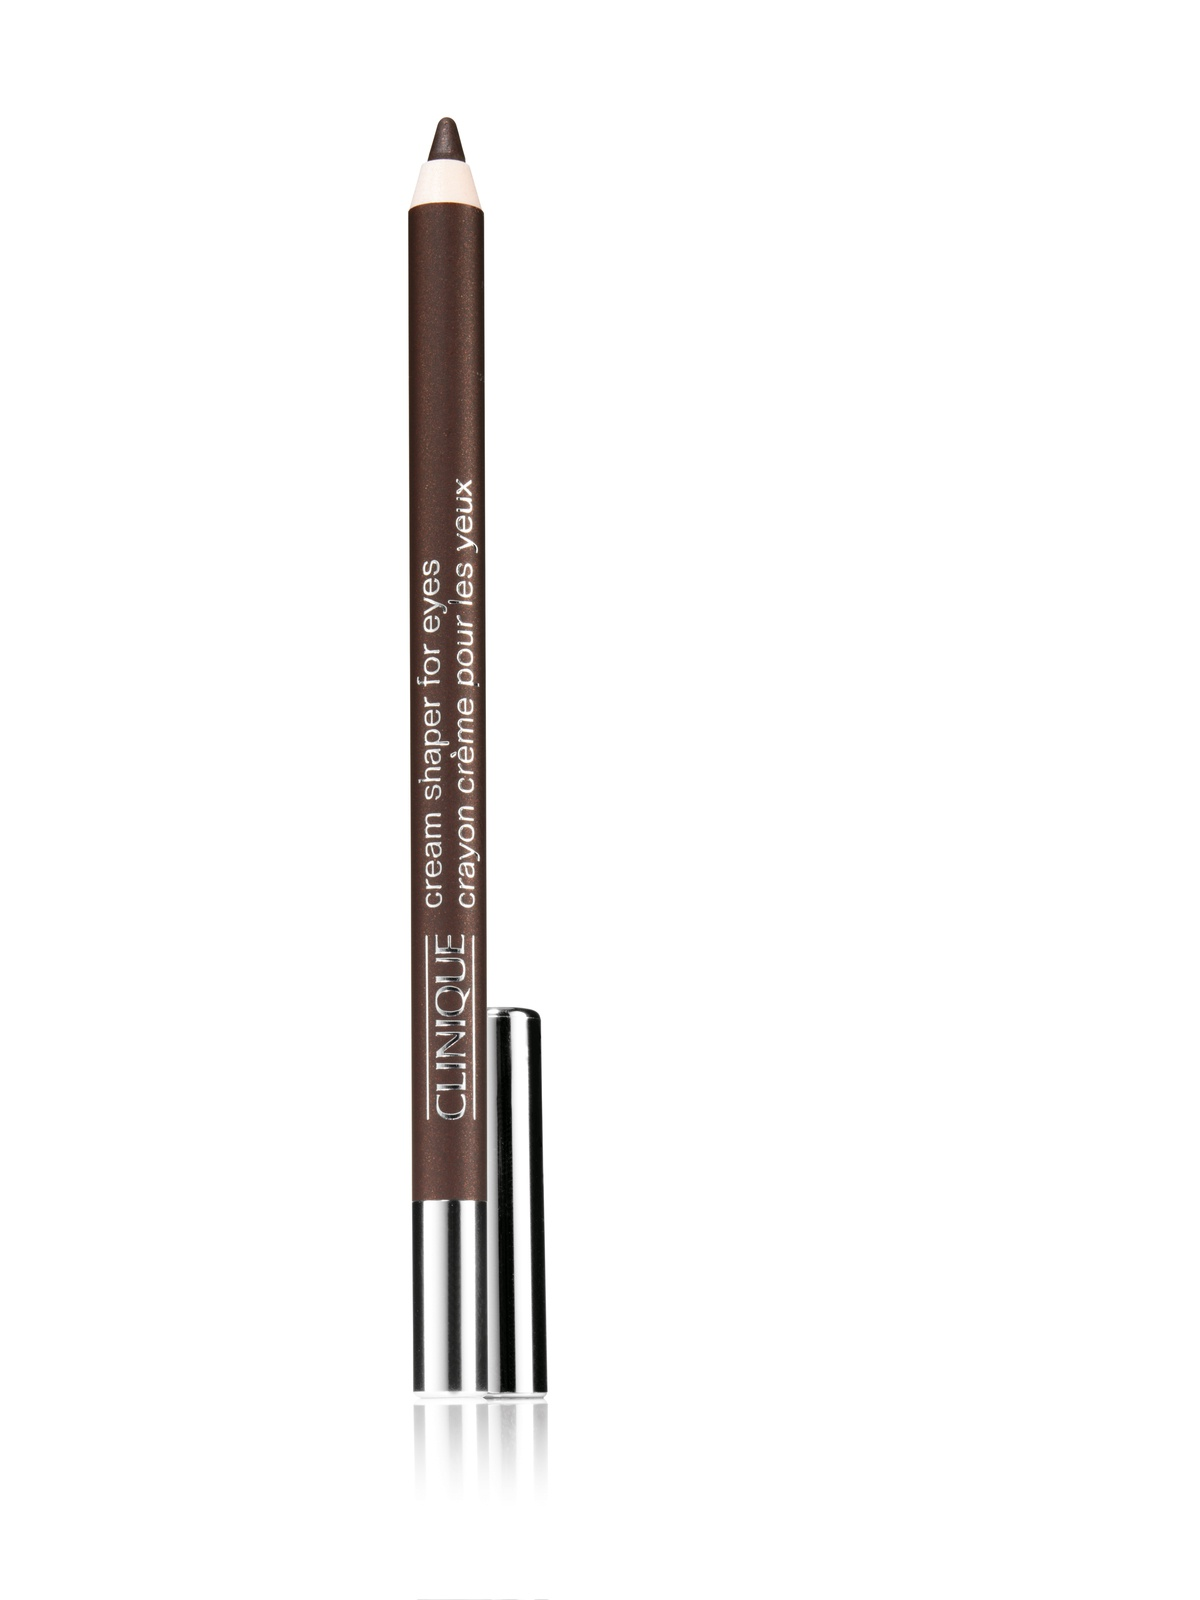 Clinique Cream Shaper For Eyes, chocolate lustre